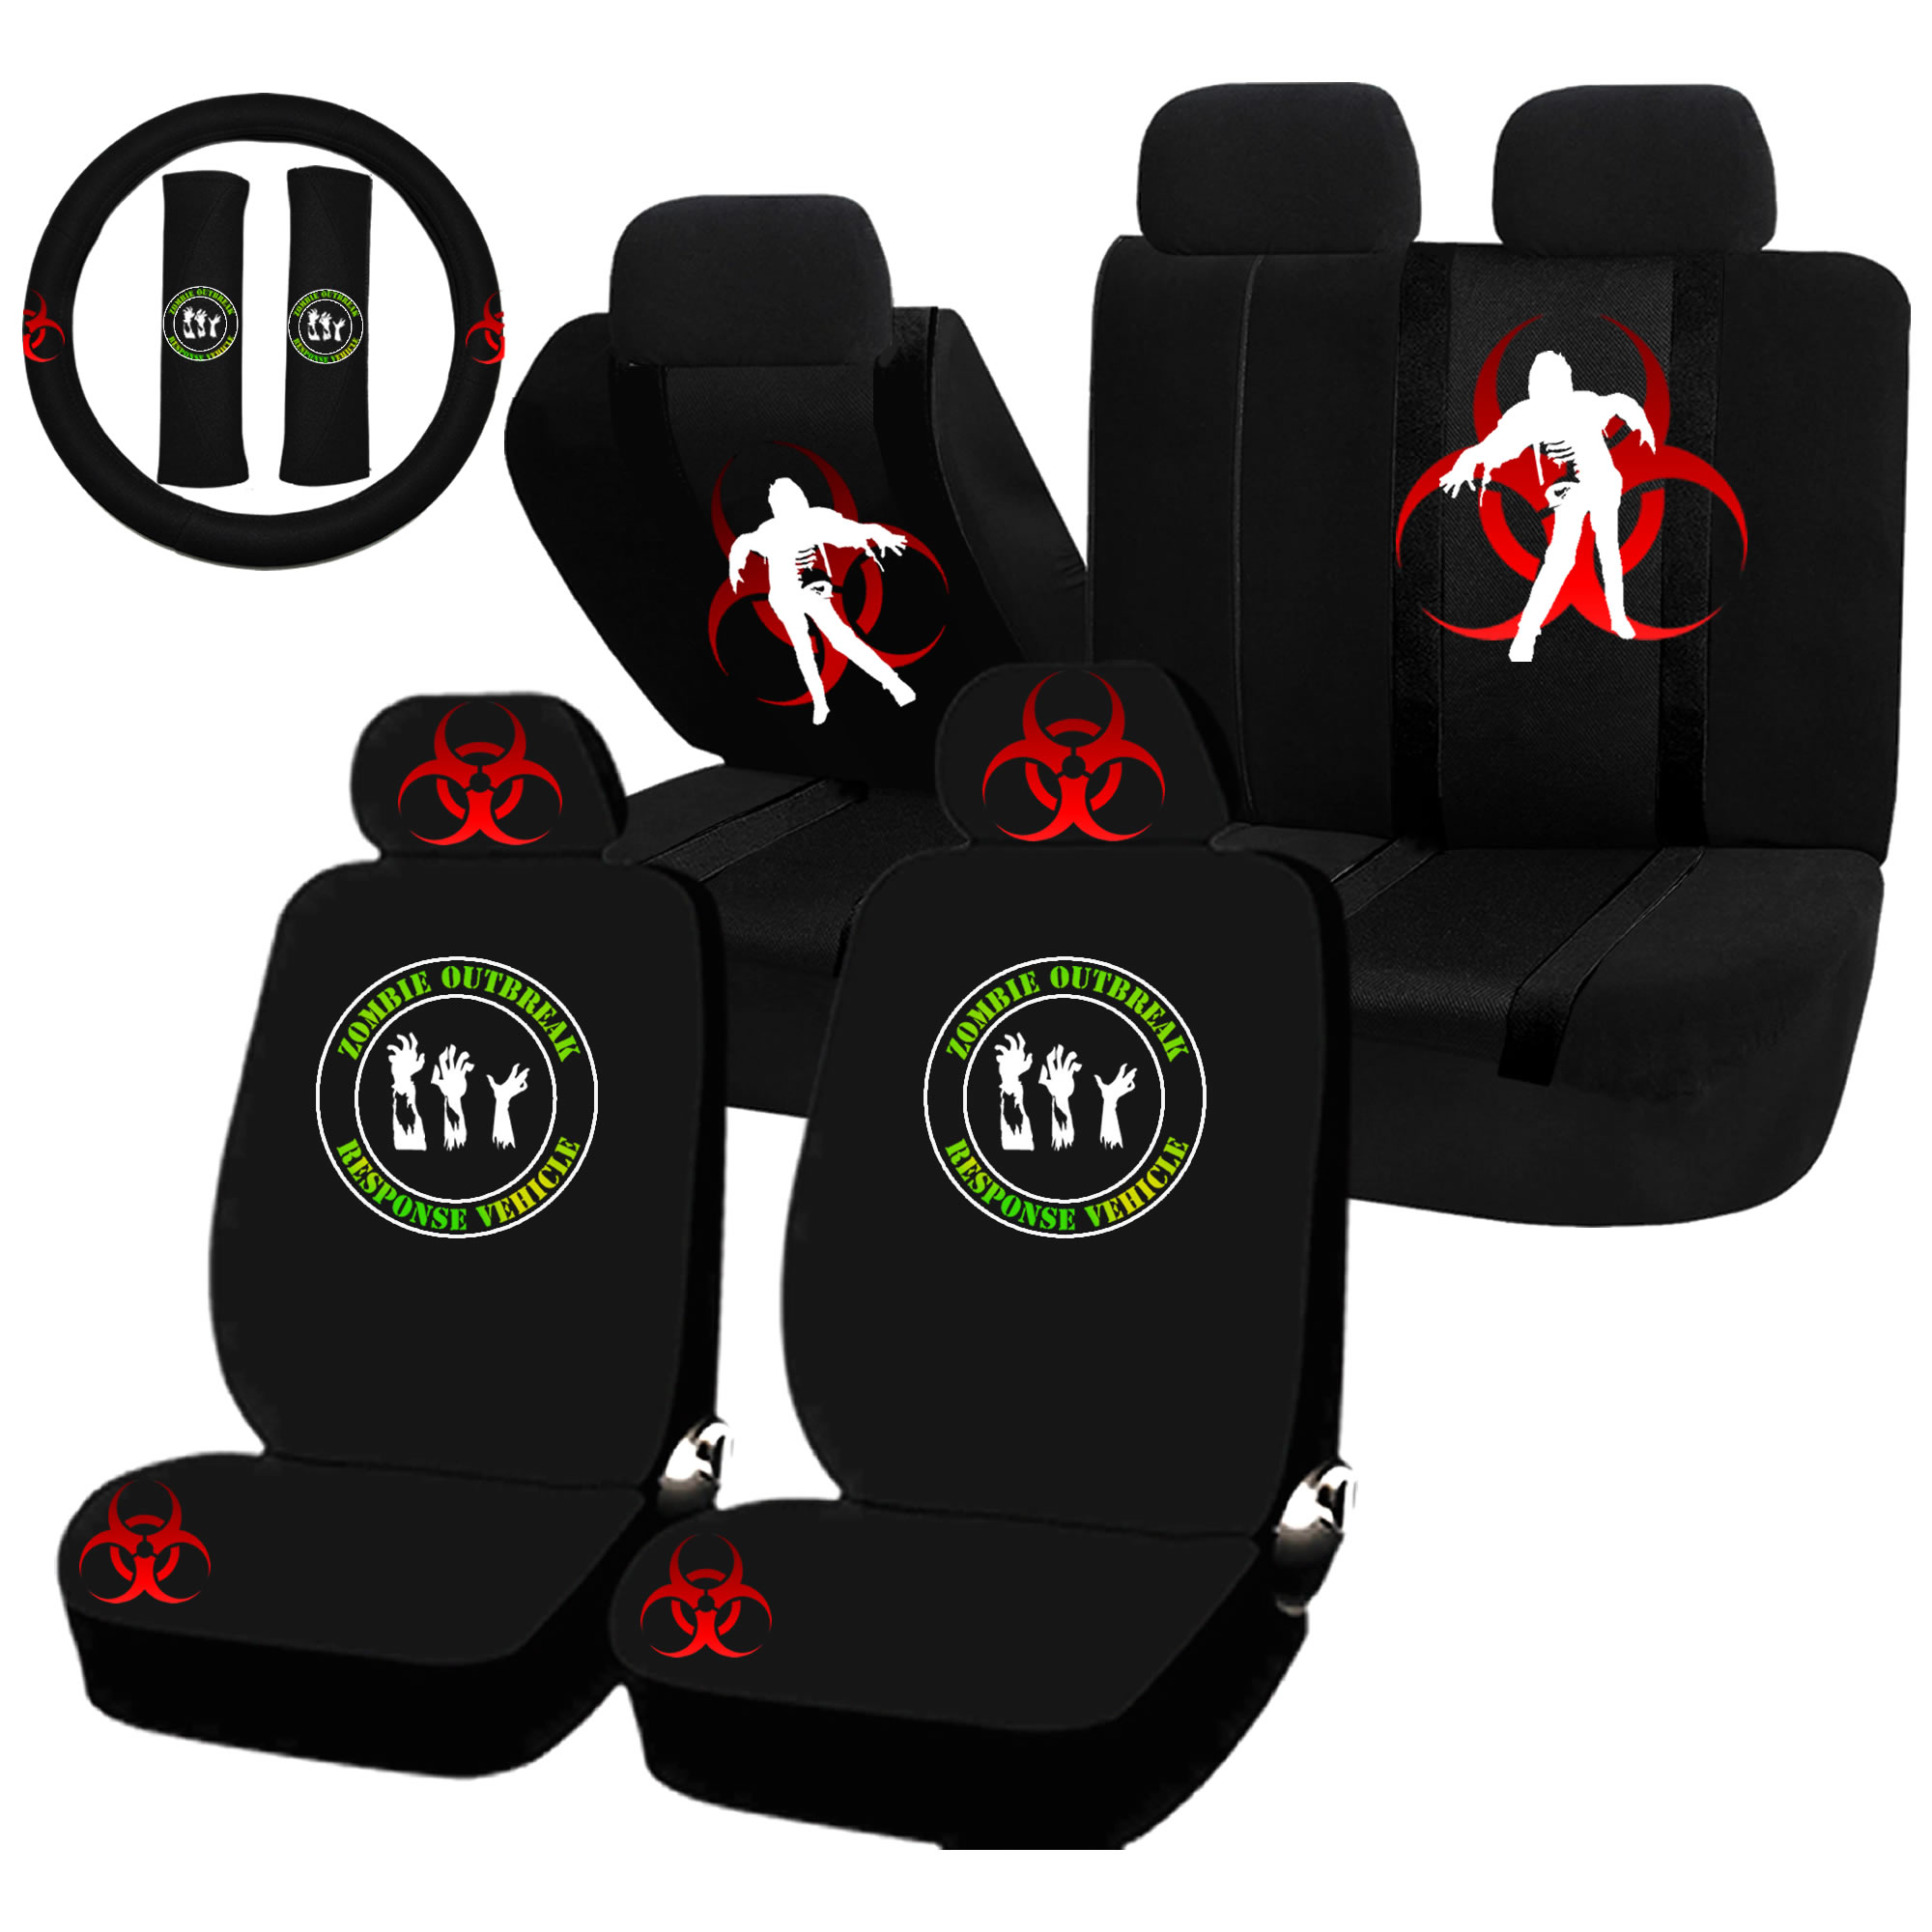 22PC Zombie Outbreak Response Seat Covers & Steering Wheel Set Universal Car Truck SUV